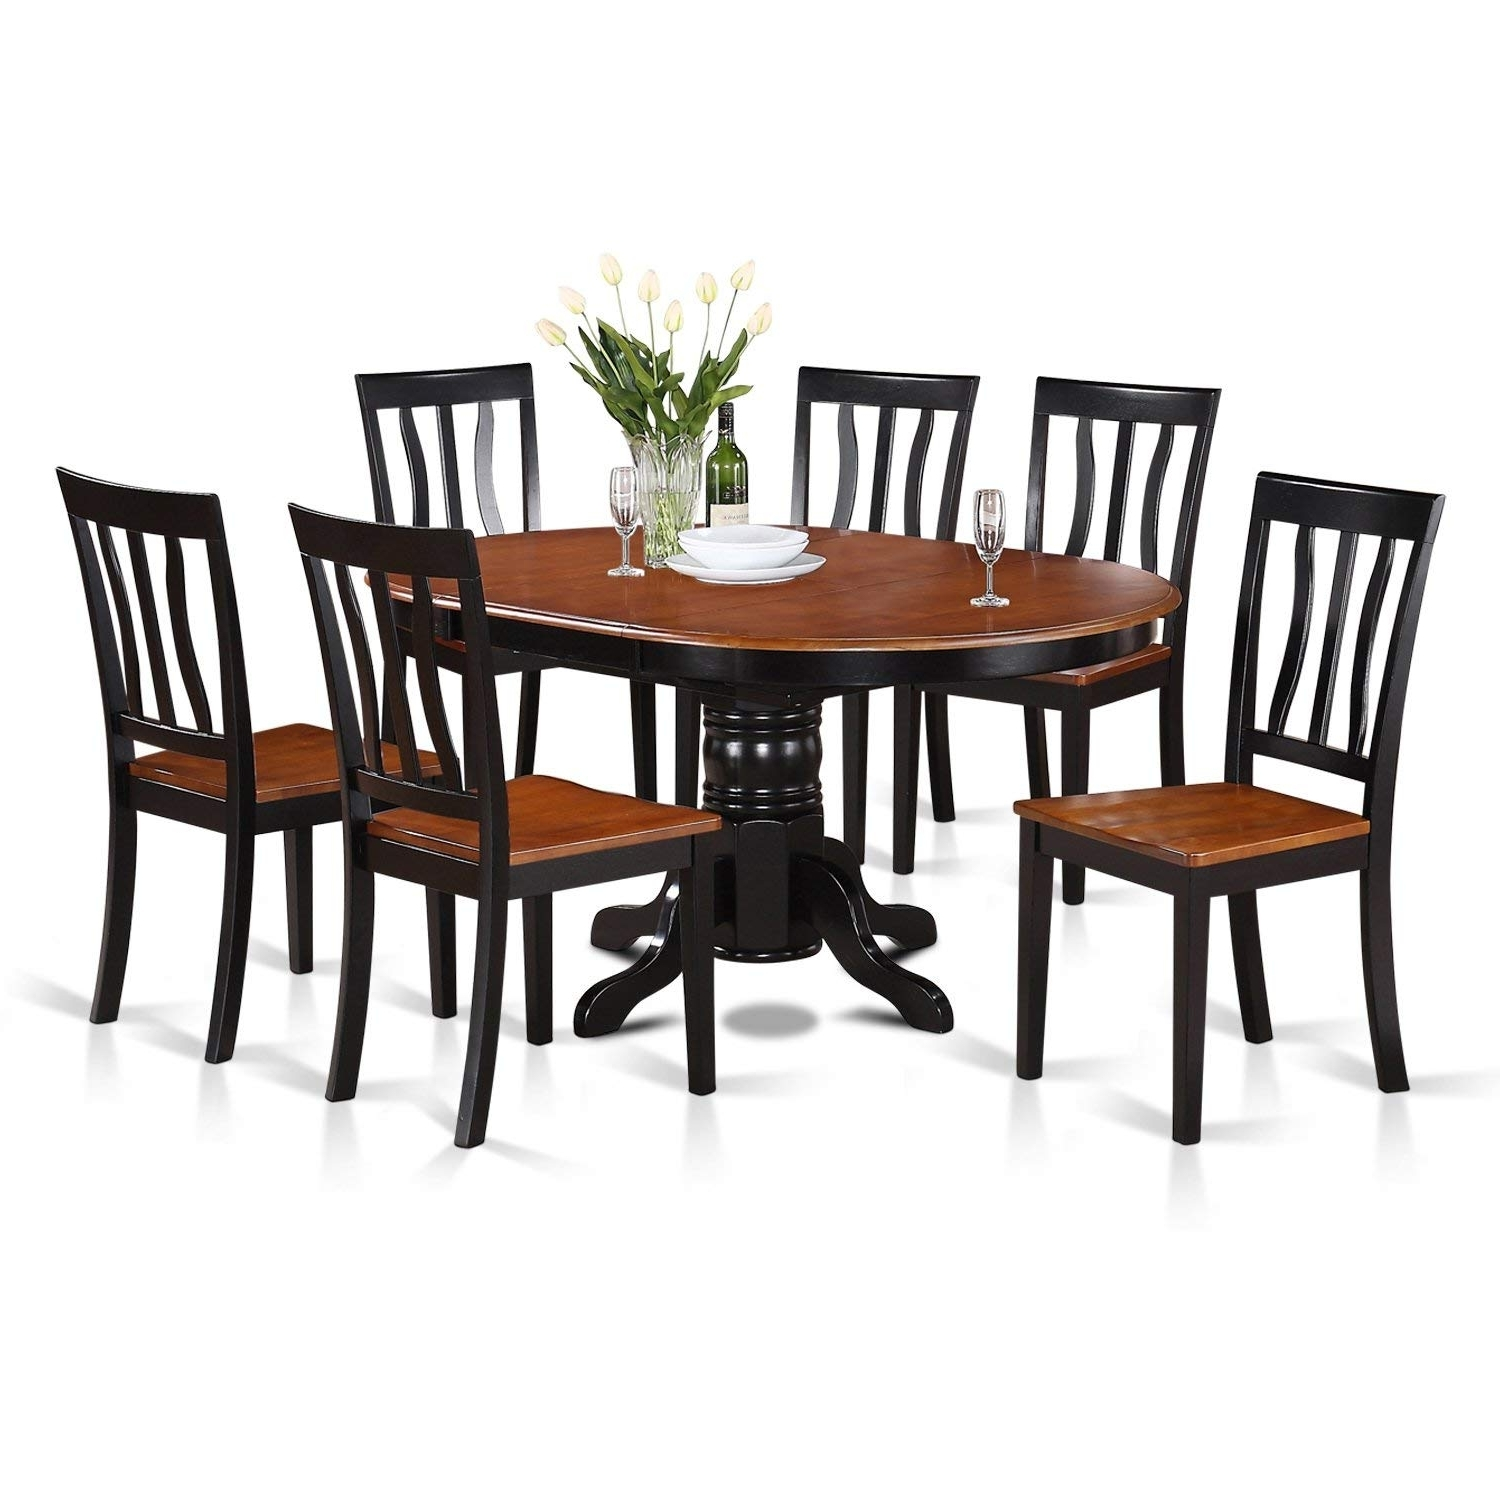 Amazon: East West Furniture Avat7 Blk W 7 Piece Dining Table Set Regarding Latest Kitchen Dining Tables And Chairs (View 3 of 25)